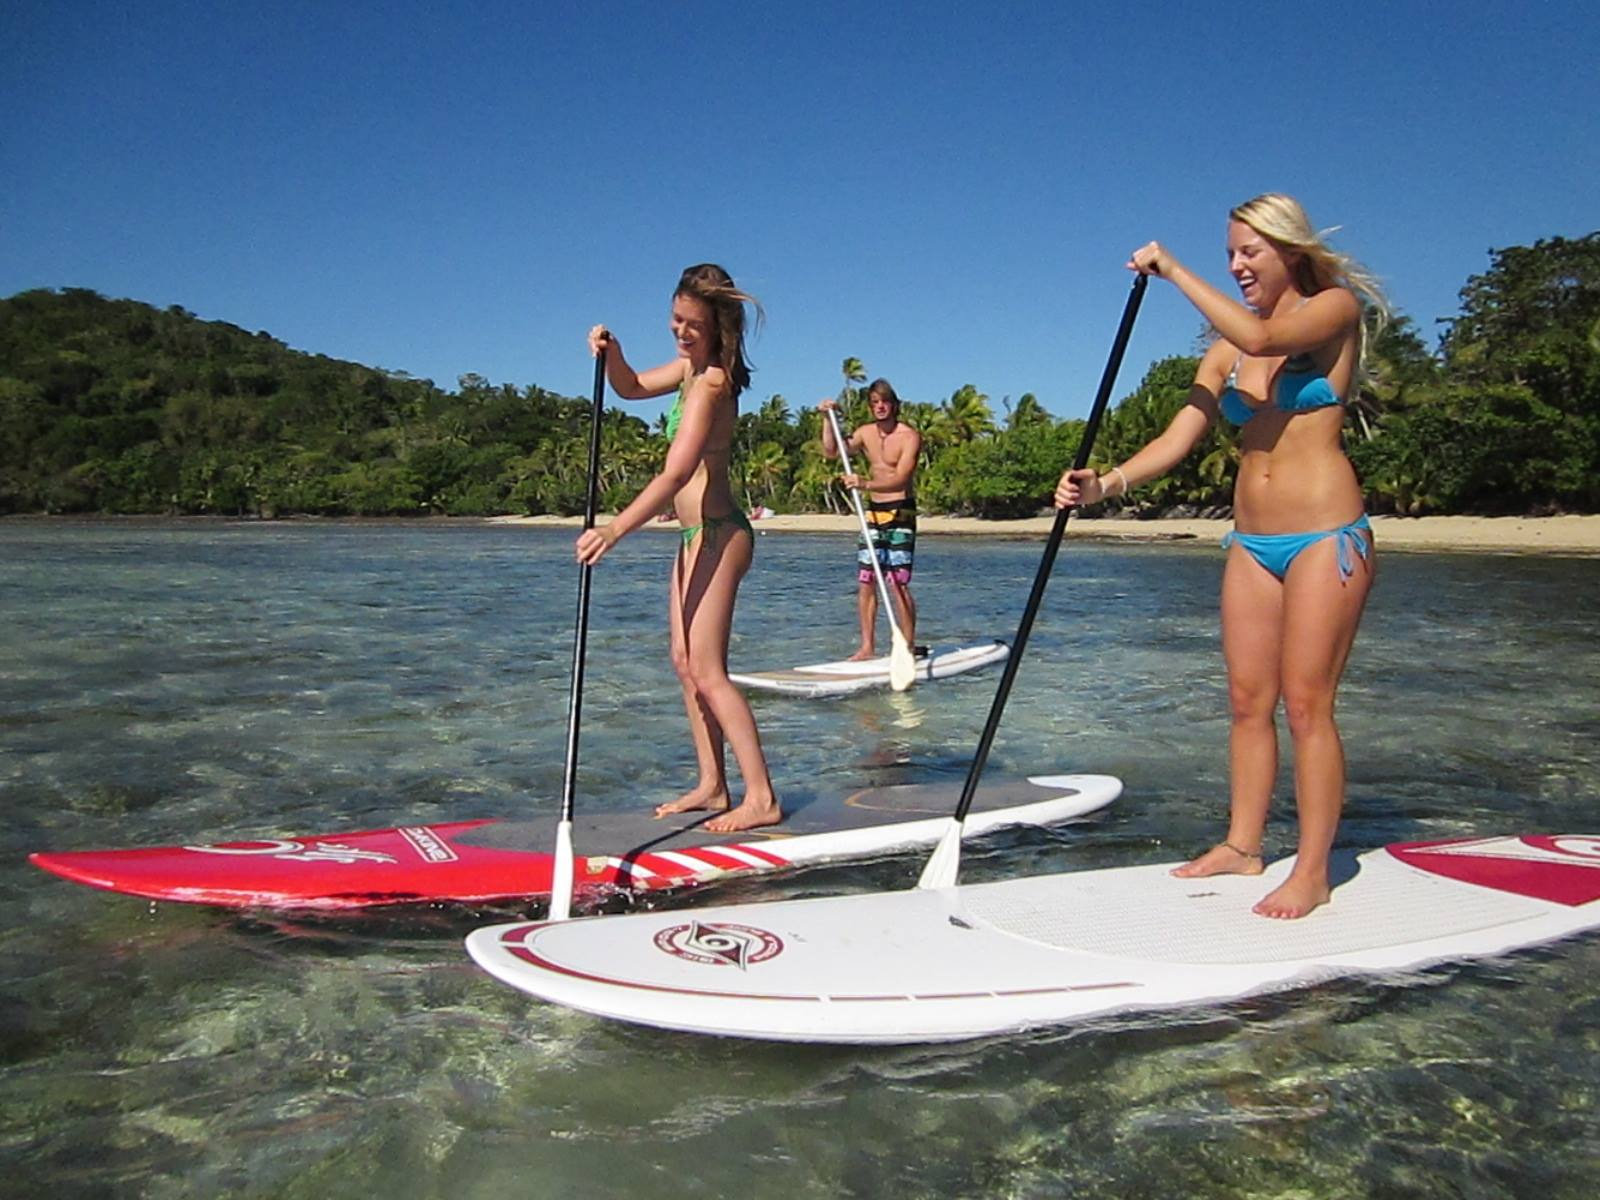 Paddle boarding from the Back beach at Macdonalds Fiji